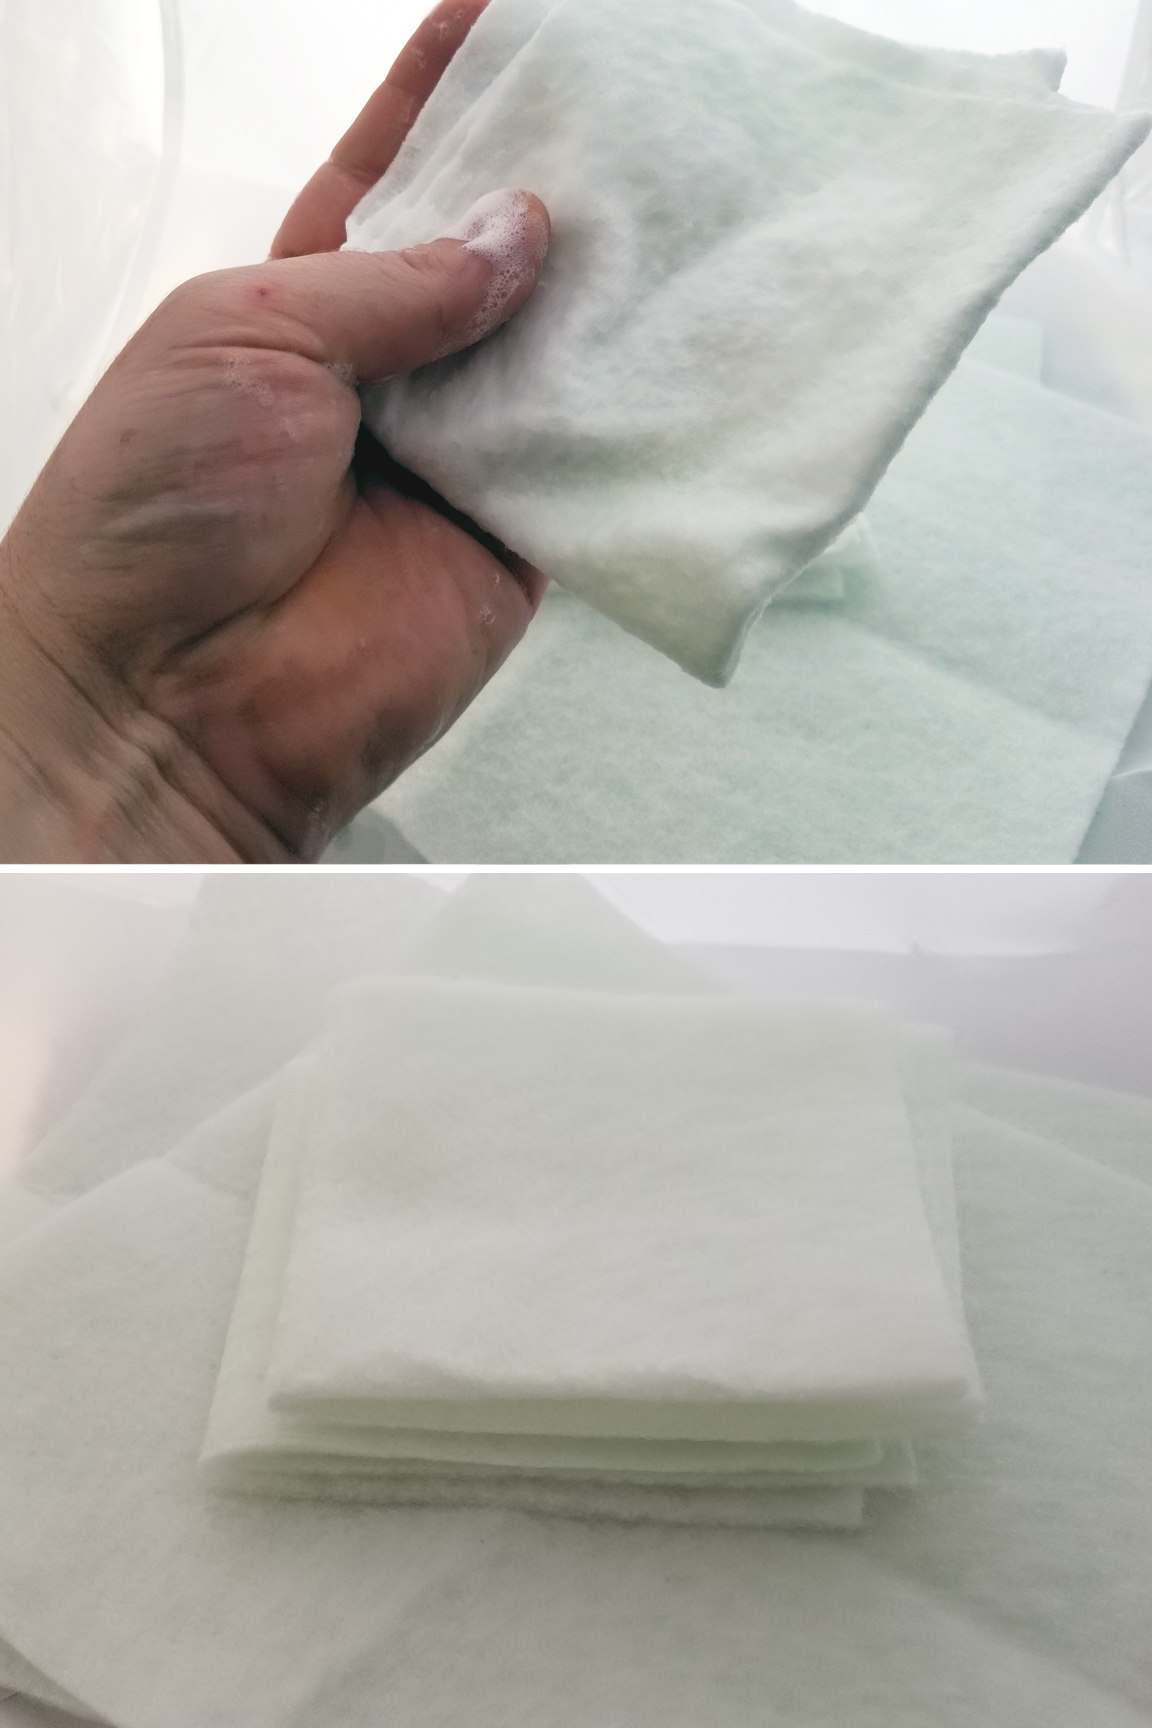 Gentle soap is safe for all surfaces. Powerful fabric cuts through grime safely.